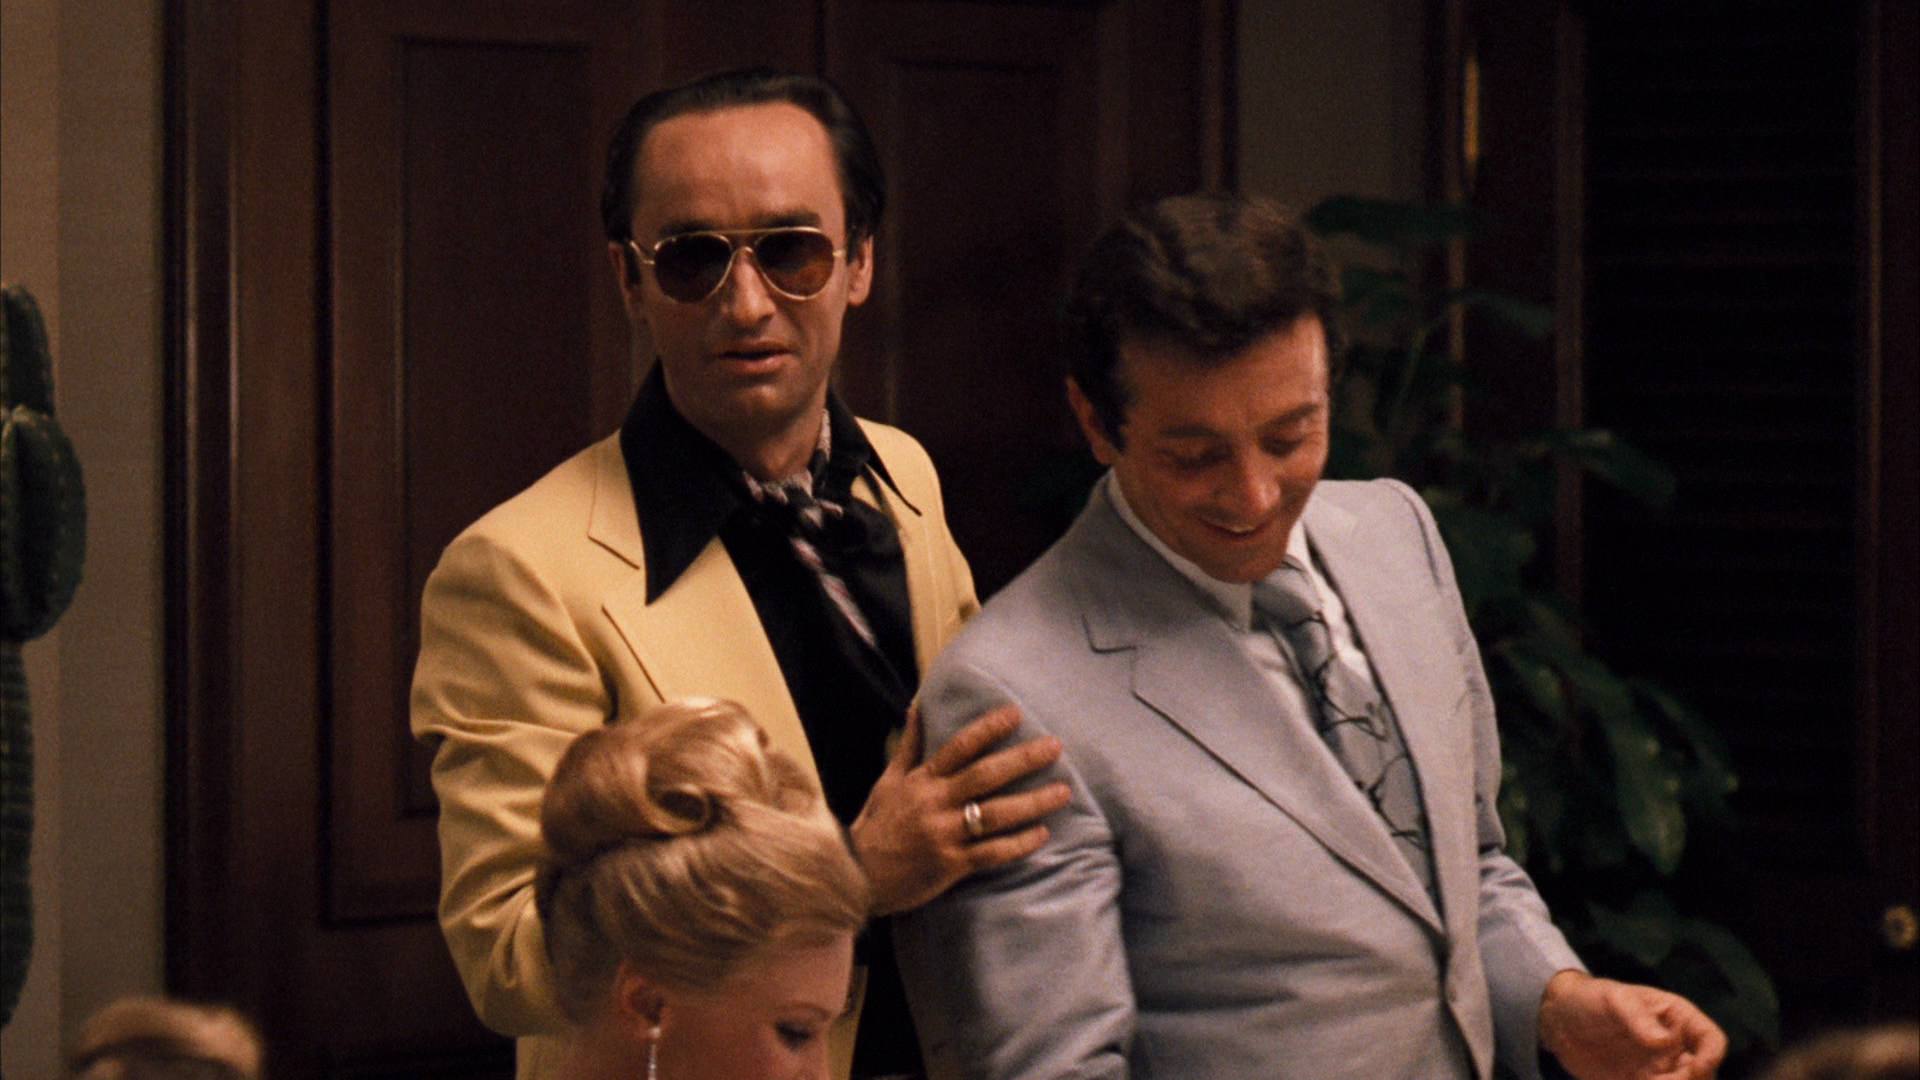 Pin By Alison Martino On Films The Godfather Fredo Corleone